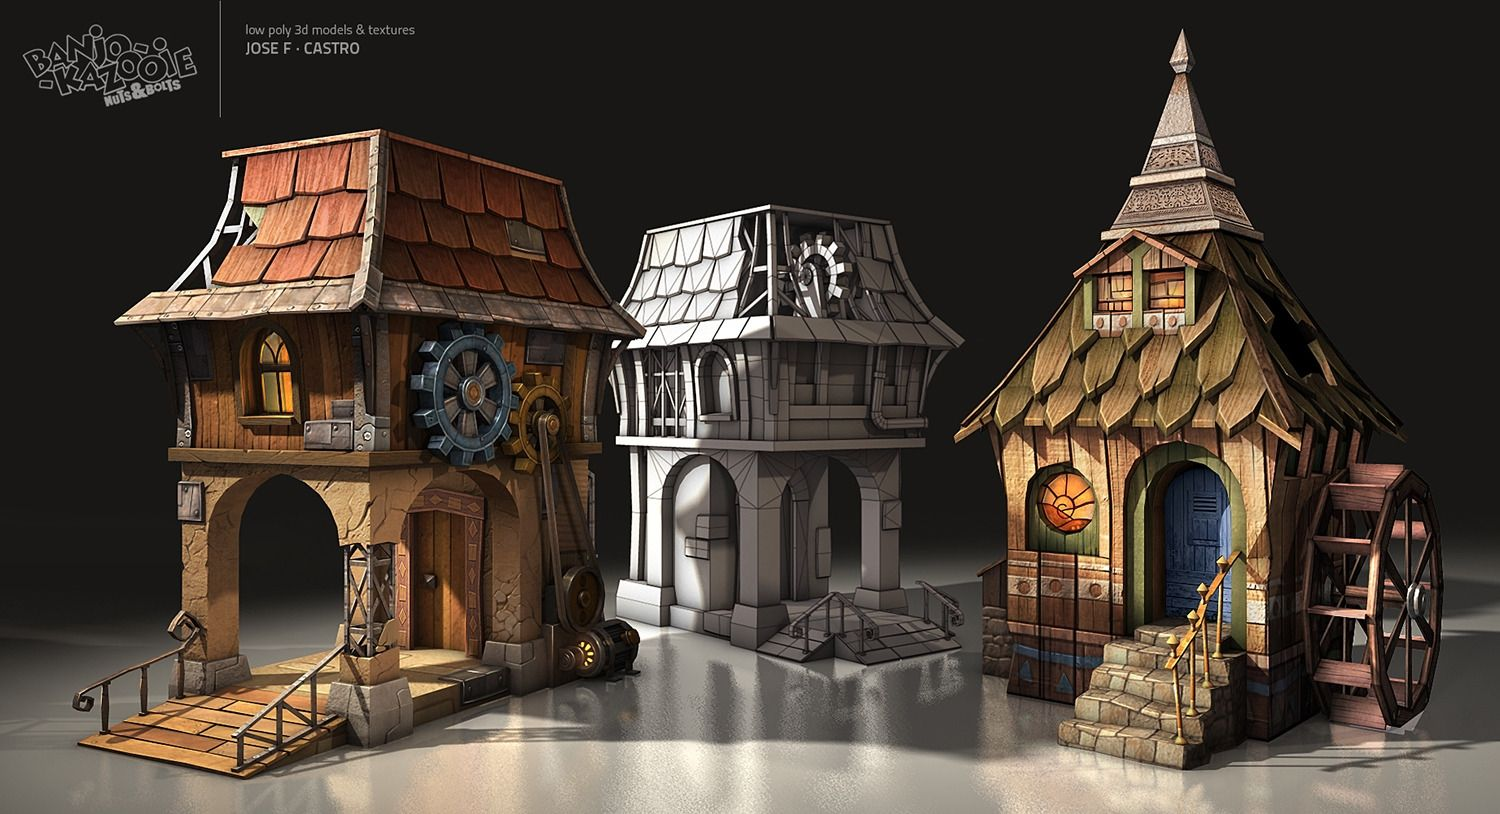 Banjo Kazooie Nuts & Bolts Houses Picture (3d, fantasy